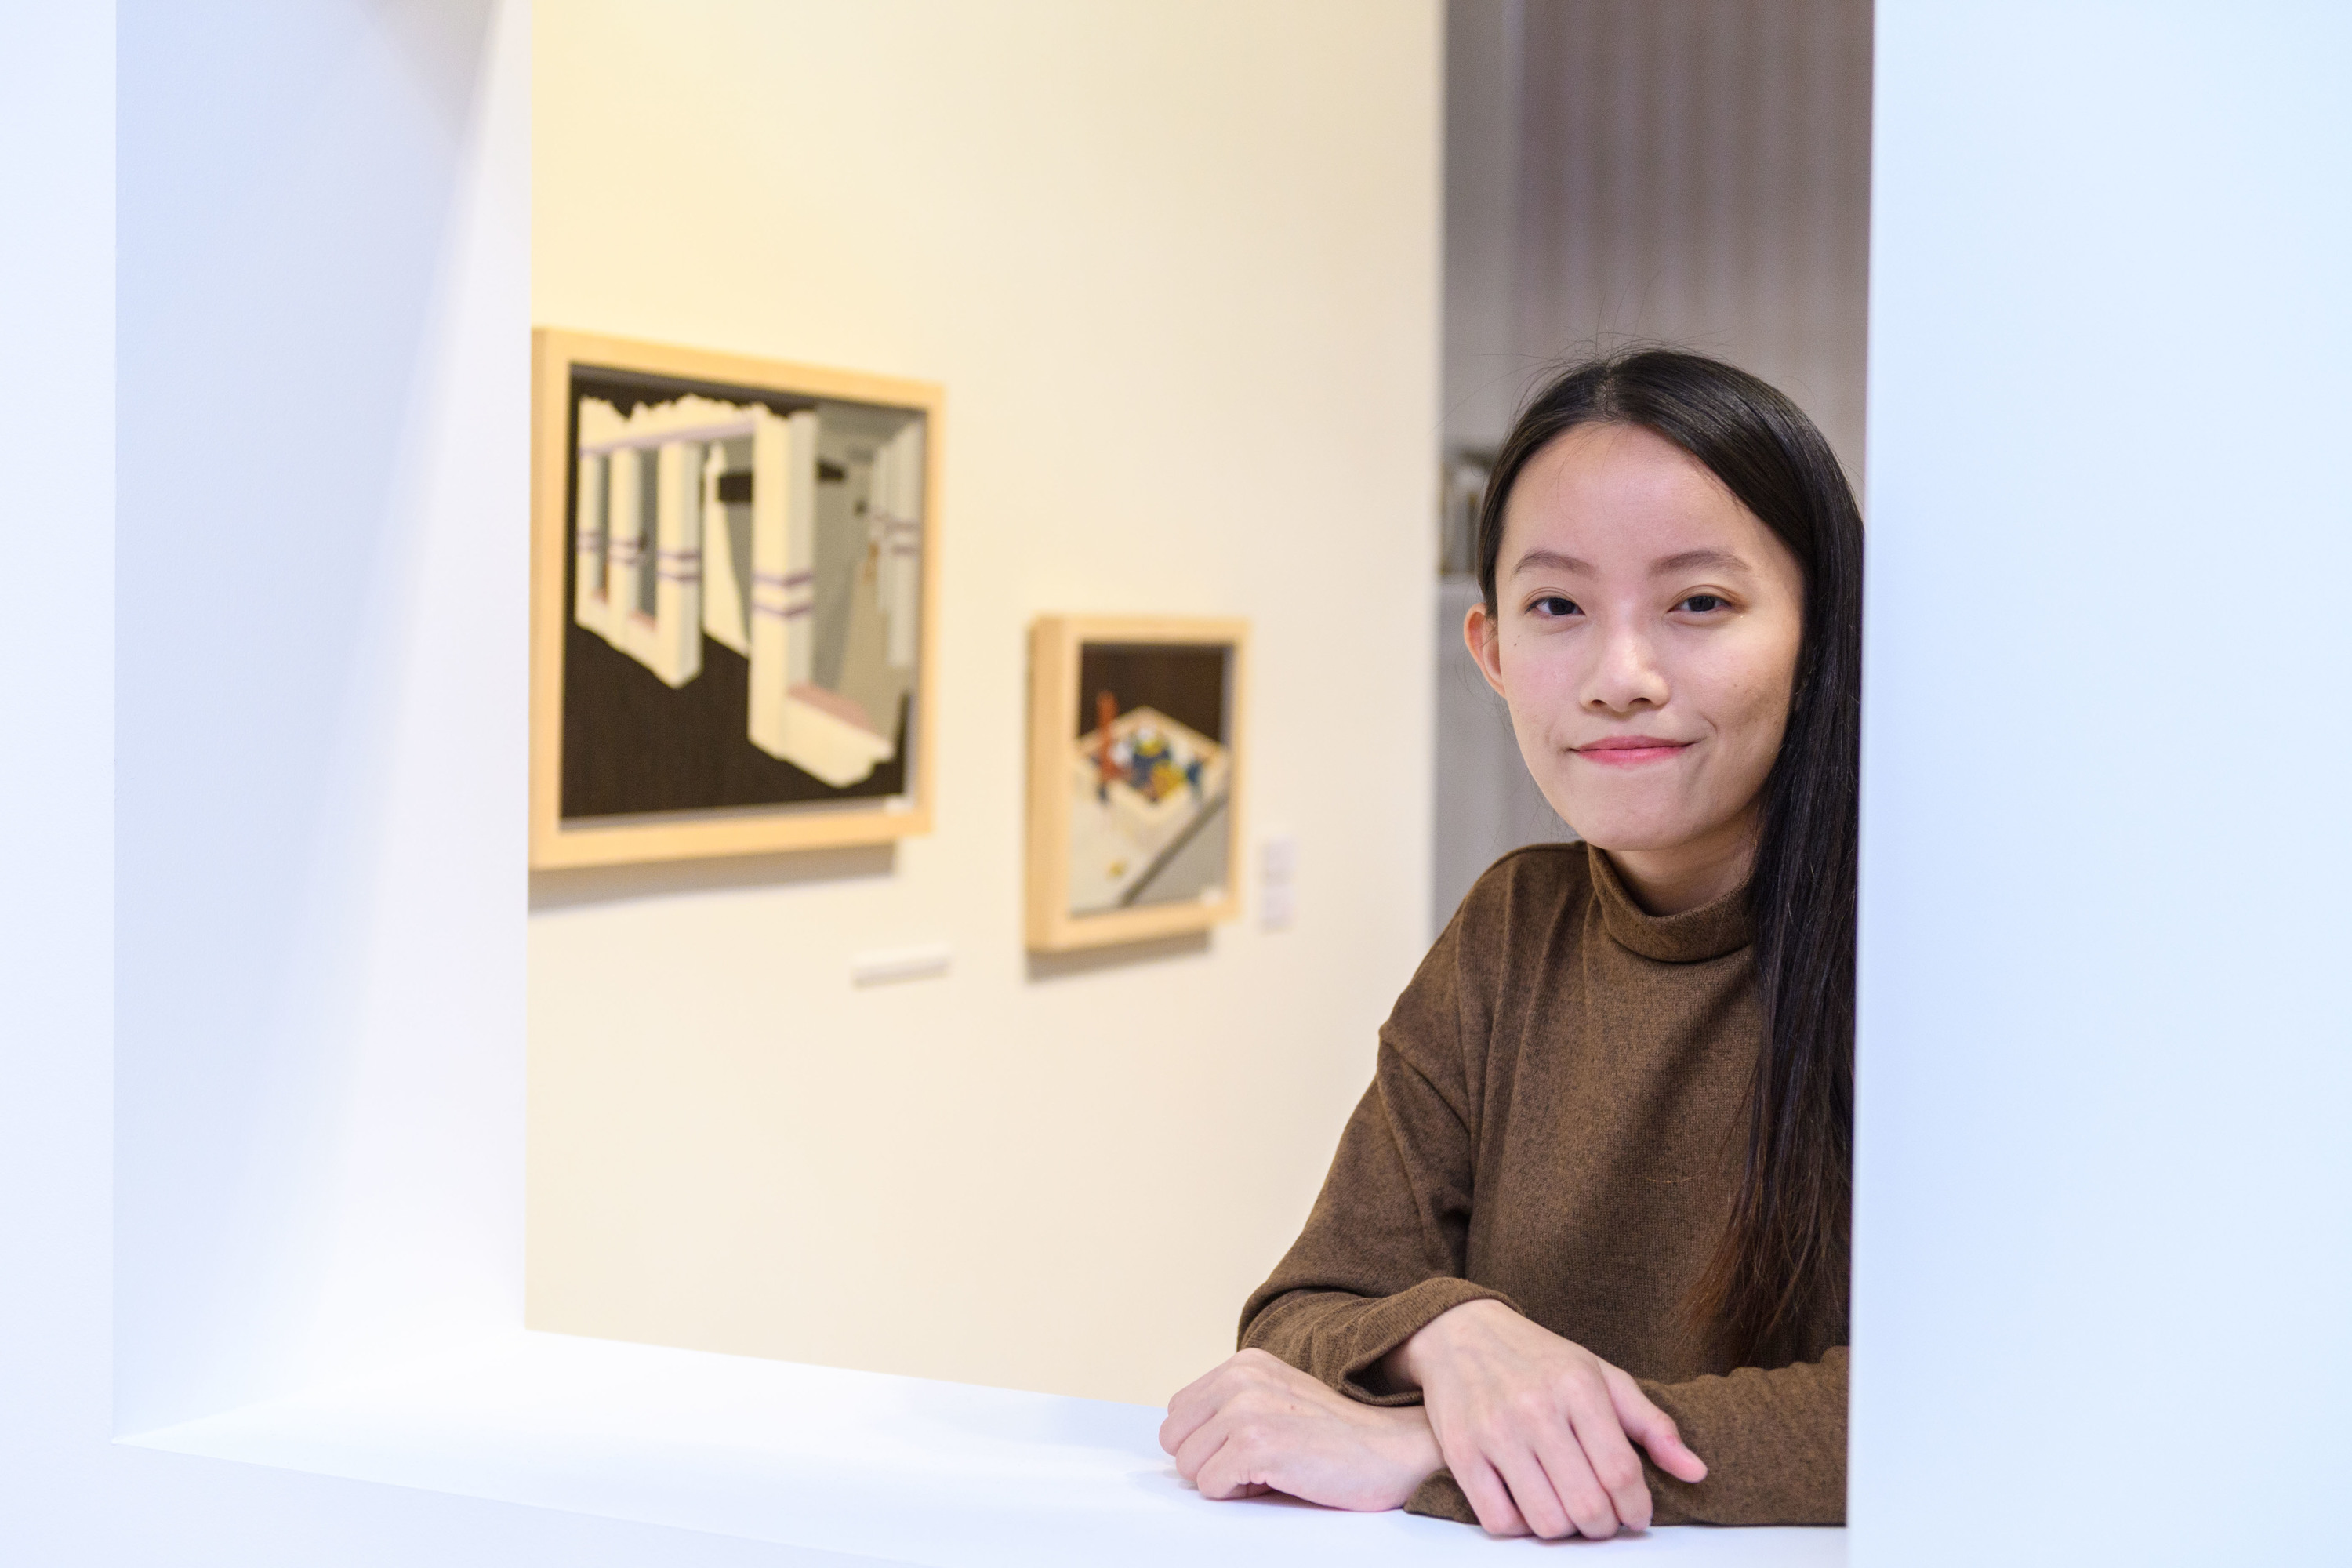 Interview: Lim Jia Qi reimagines HDB blocks into works of art